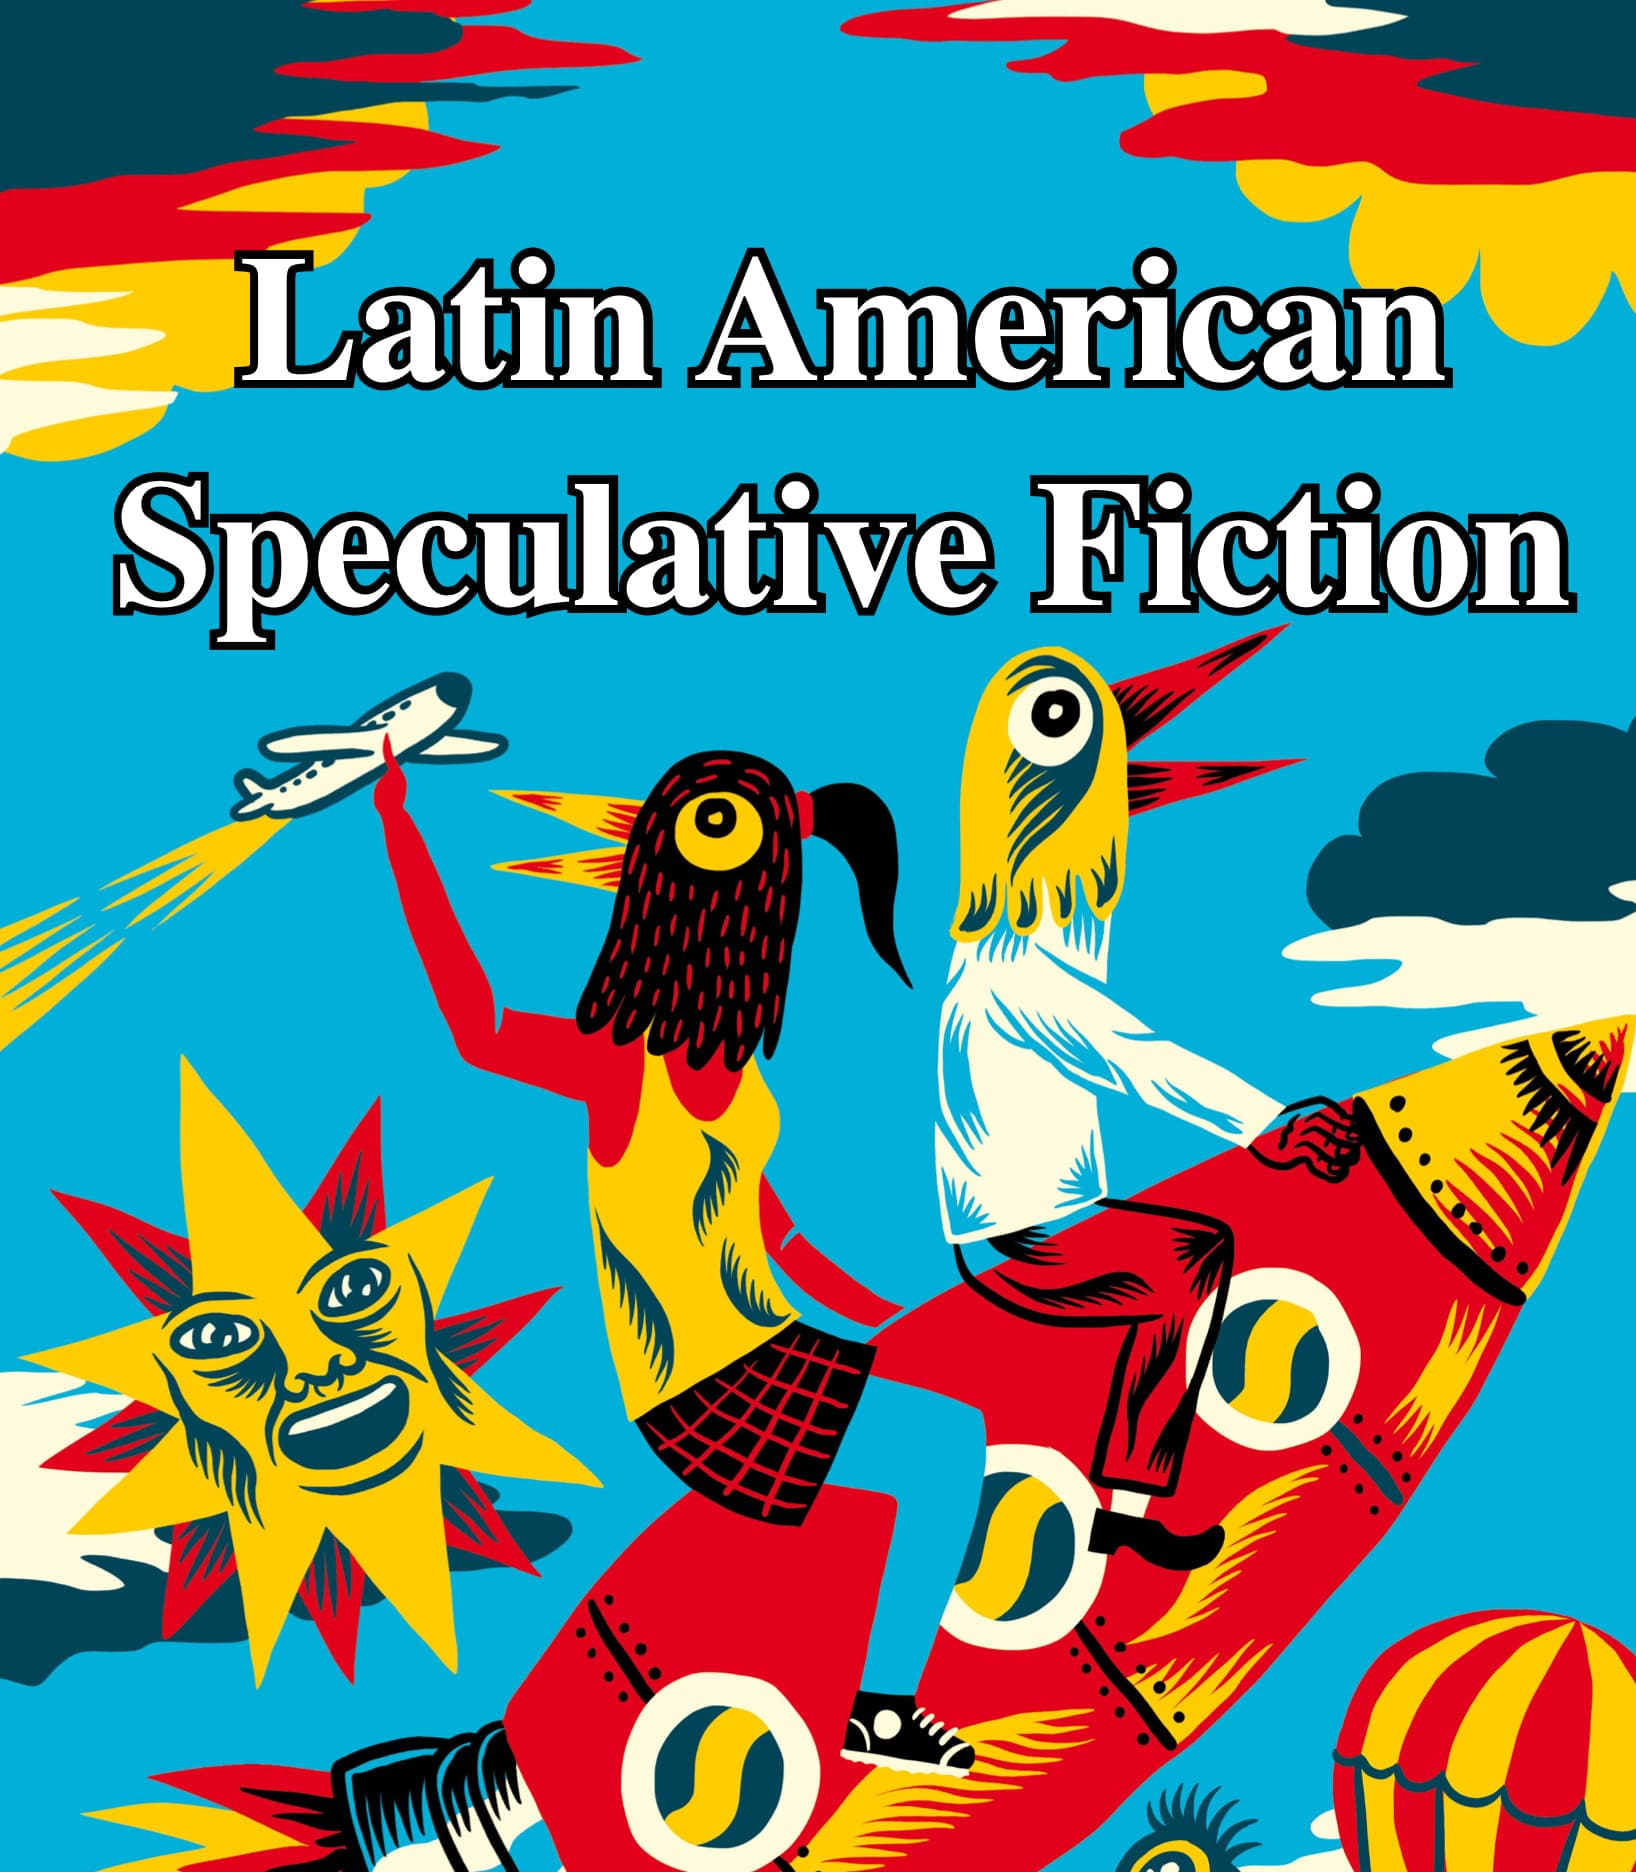 Paradoxa: Latin American Speculative Fiction